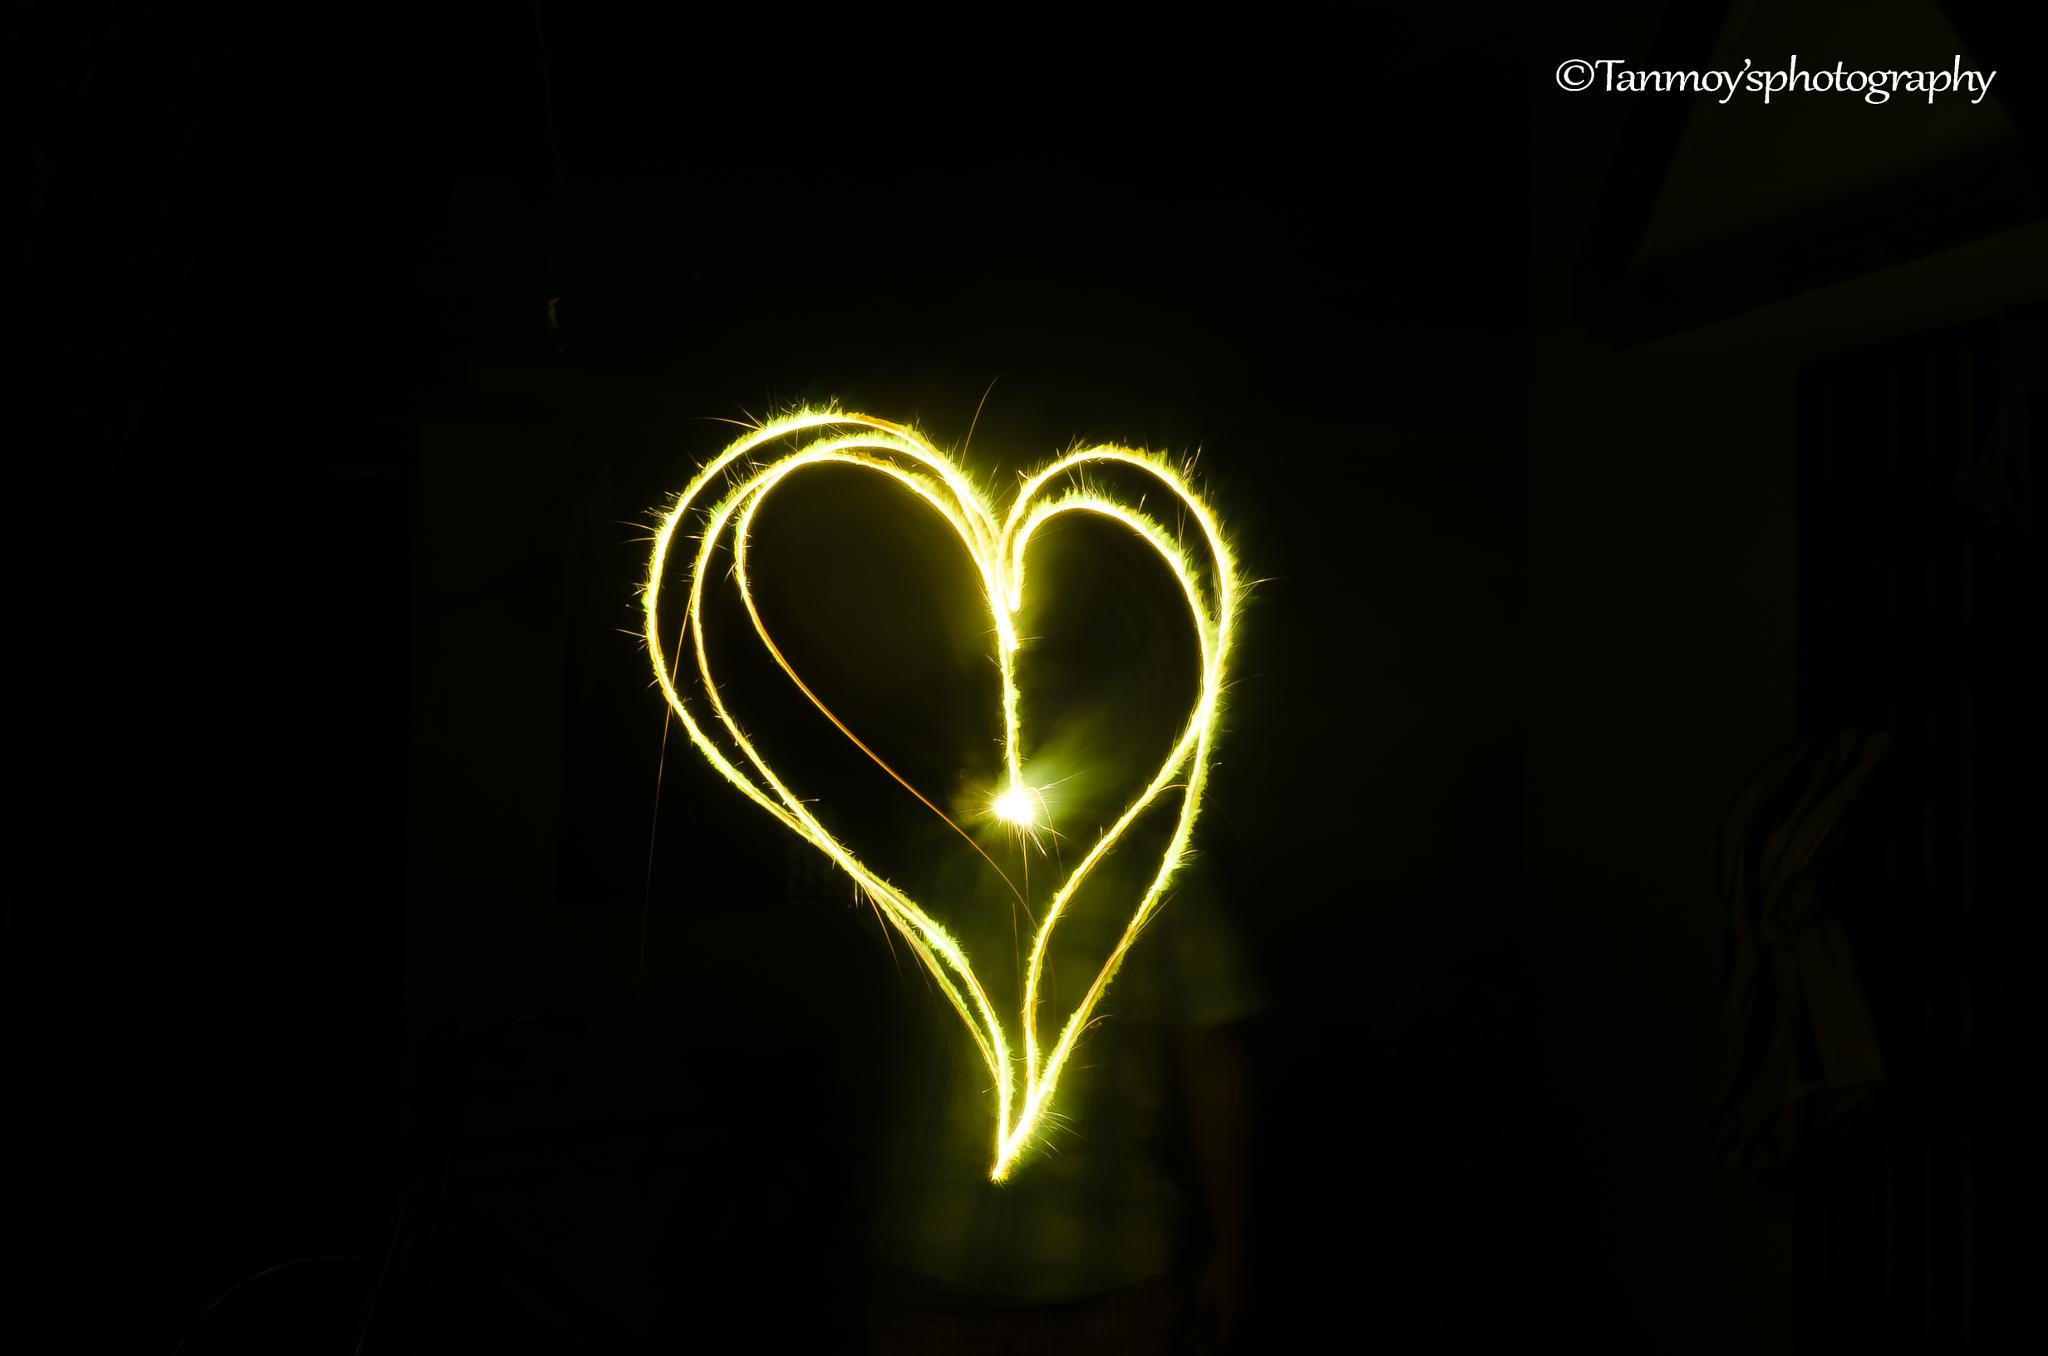 Light painting by Tanmoy Adhikary